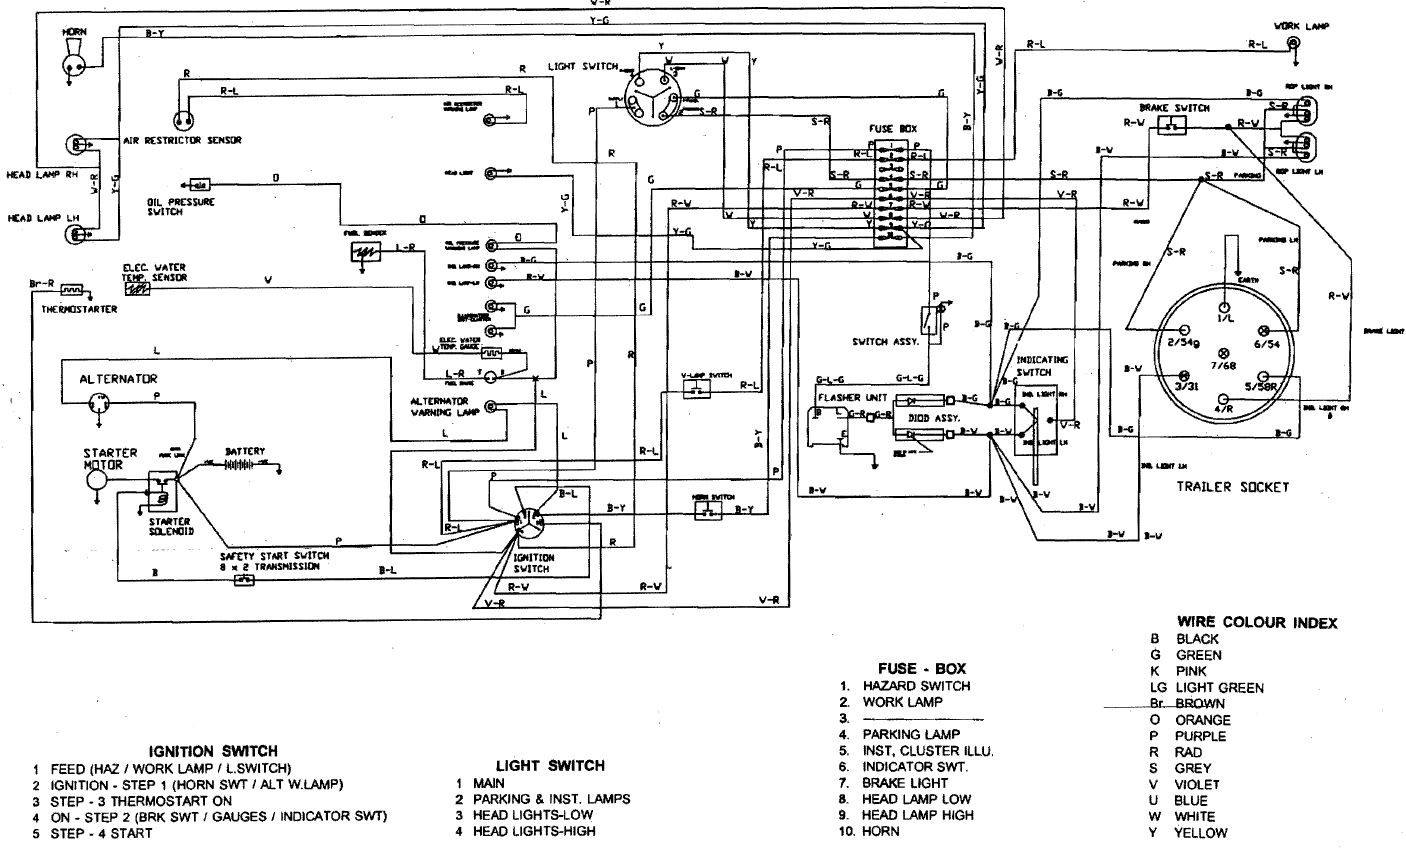 kubota mower ignition switch wiring diagram